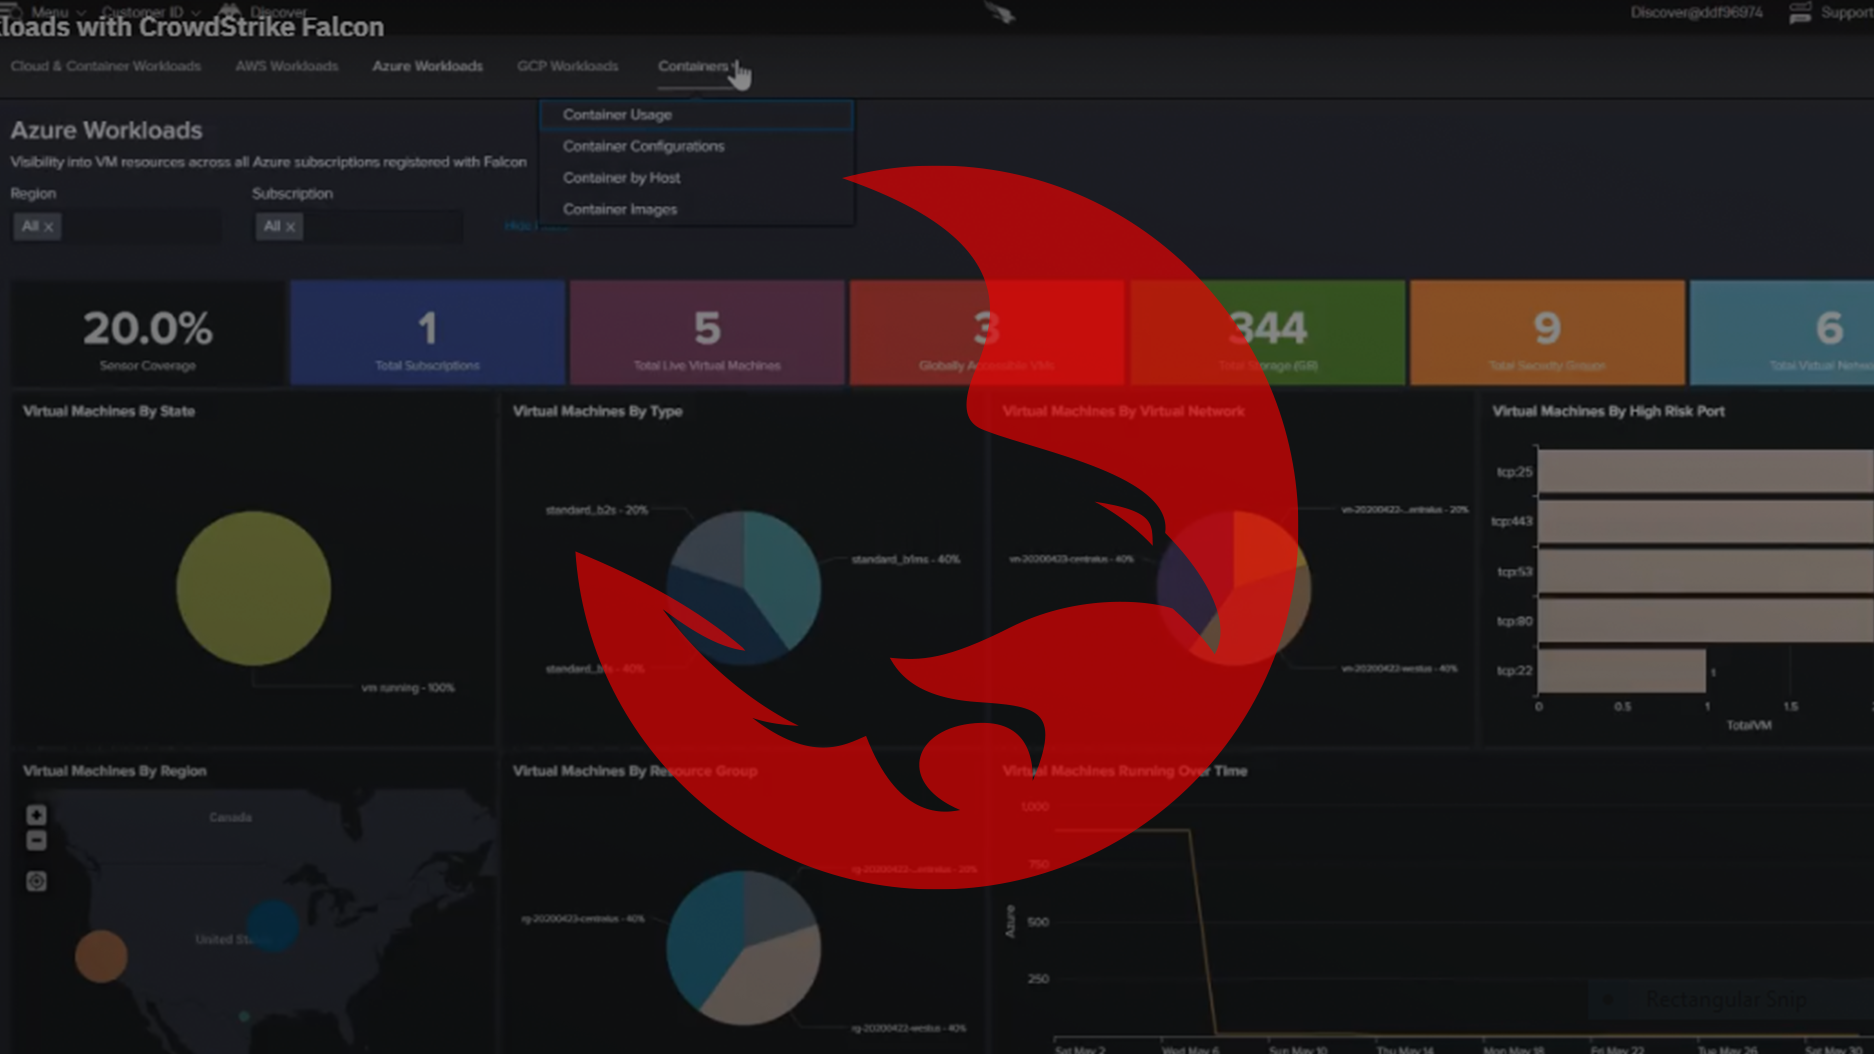 Protecting Cloud and Container Workloads with CrowdStrike Falcon